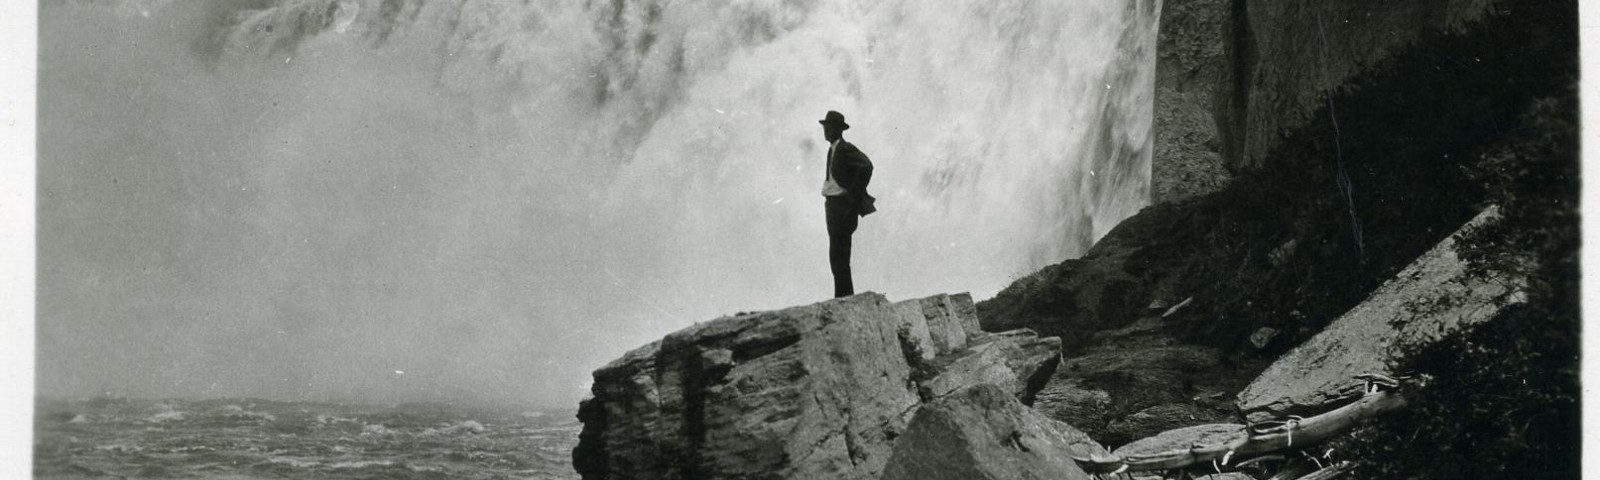 Vintage black-and-white photo of a person standing in front of waterfall.